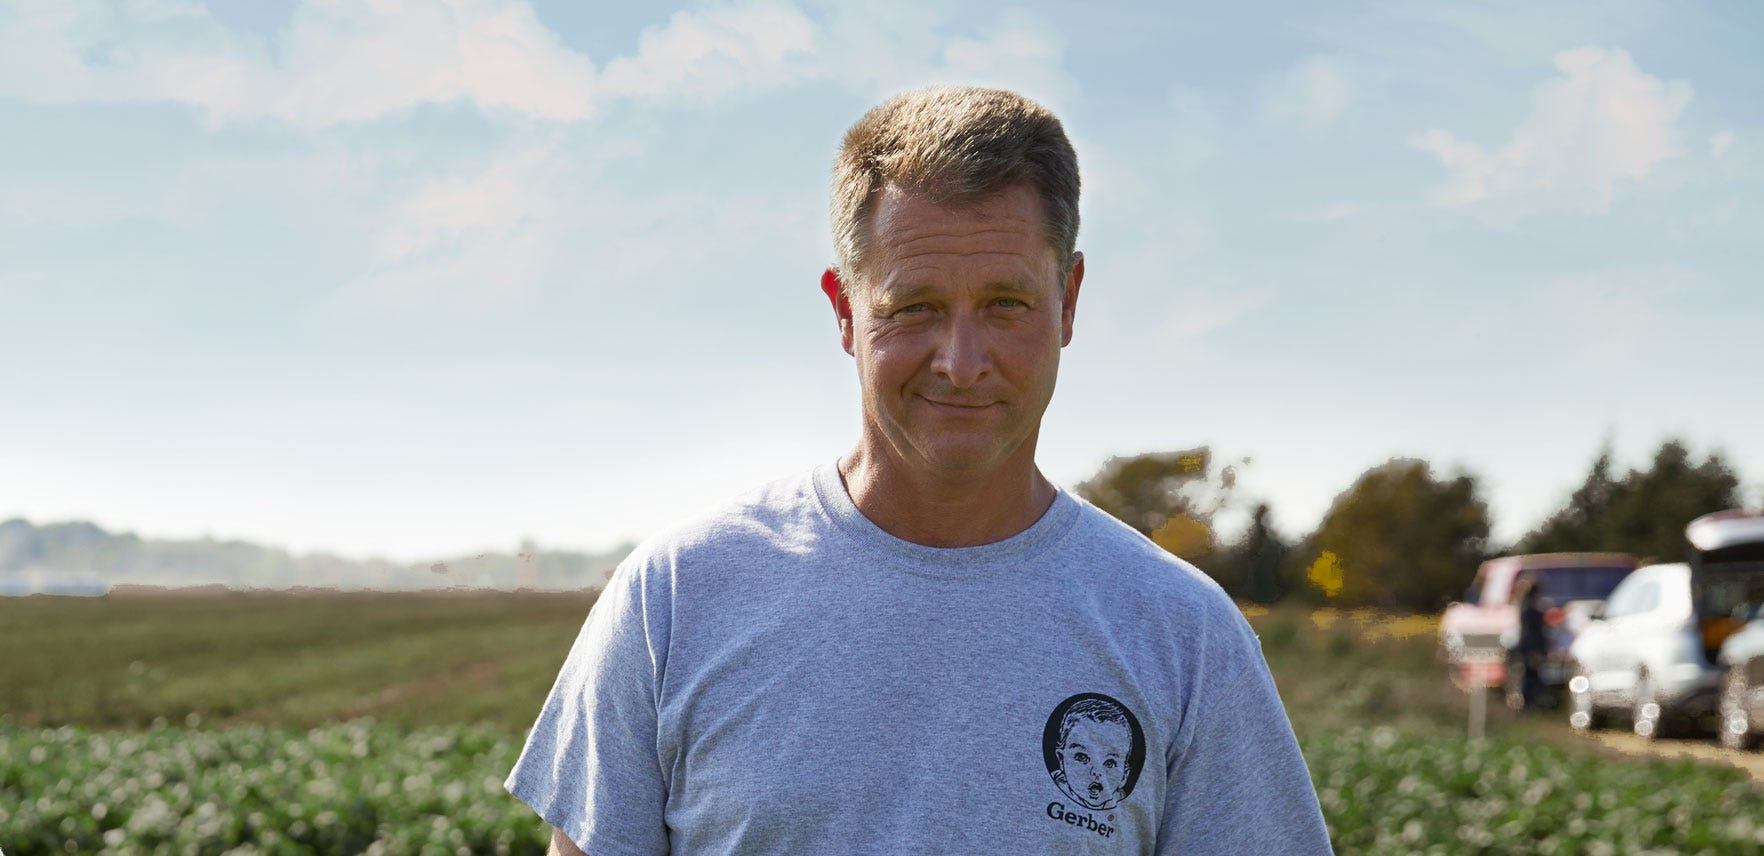 Chris Falak, Gerber Farmer